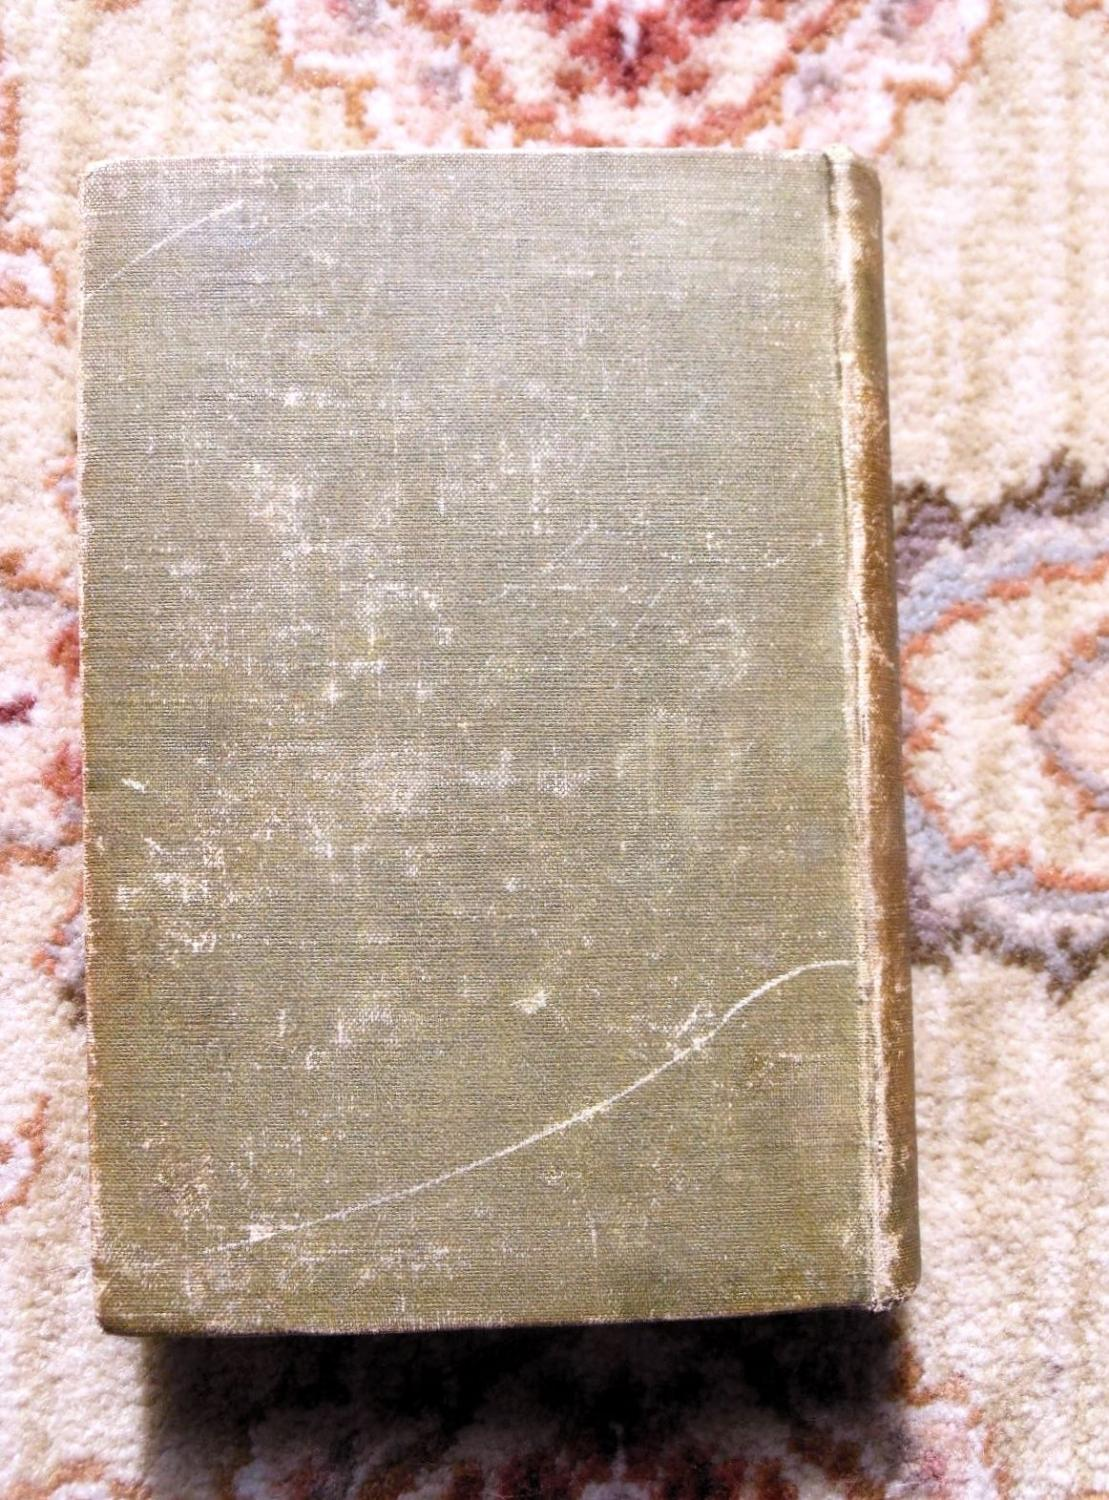 """1897 JOHN GALSWORTHY - FIRST EDITION of HIS FIRST BOOK """"FROM THE FOUR WINDS"""": John ..."""